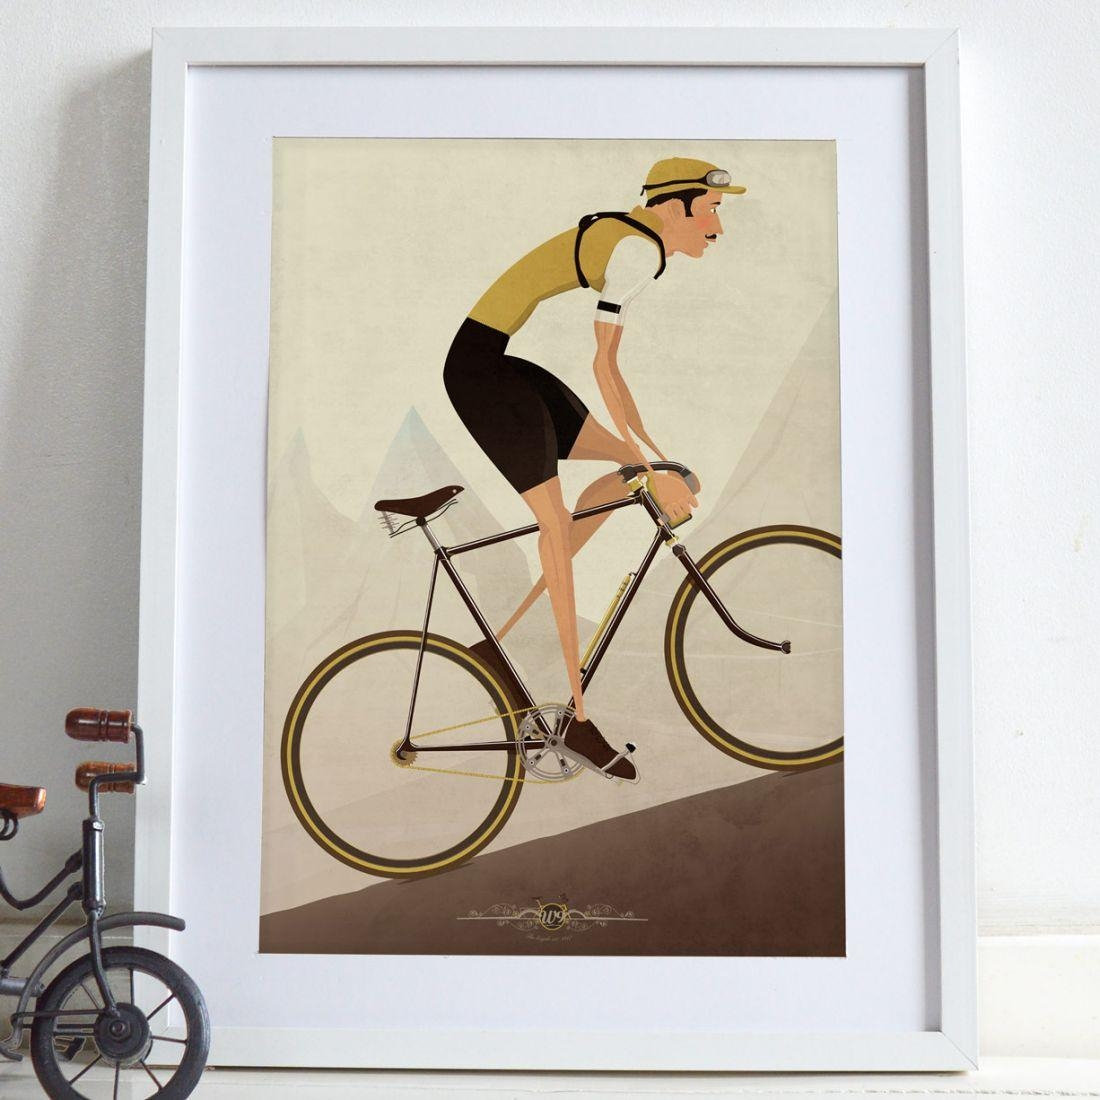 Vintage Cyclist Bicycle Poster Wall Art Bike Print - Ethical.market intended for Cycling Wall Art